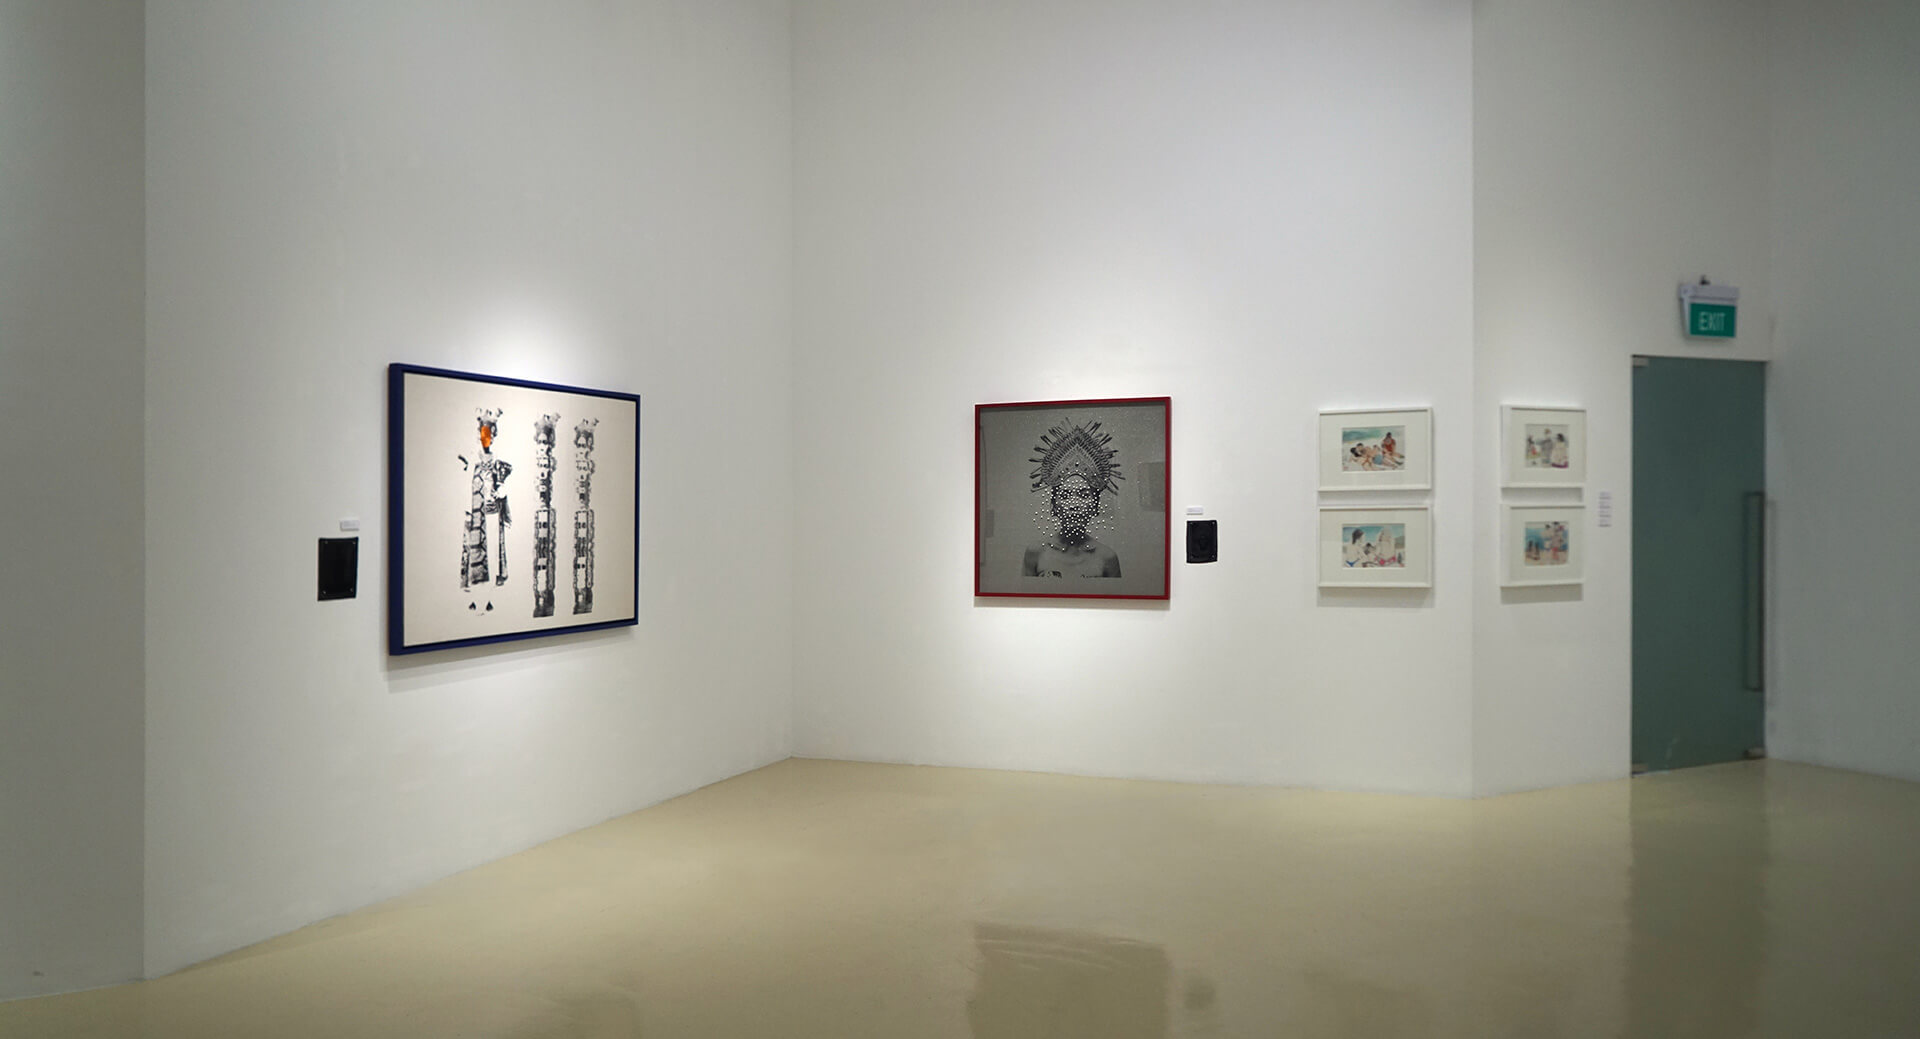 From left to right: 'Mevrouw Paradiso' (2018) and 'Give Me Pearl Necklace' by Octora, and 'Impressions of Bali' (2017) by Li Jin | (Re)Imagining the Image: Contemporary Artists in Asia Converse with Photography | Octora and Li Jin | STIRworld